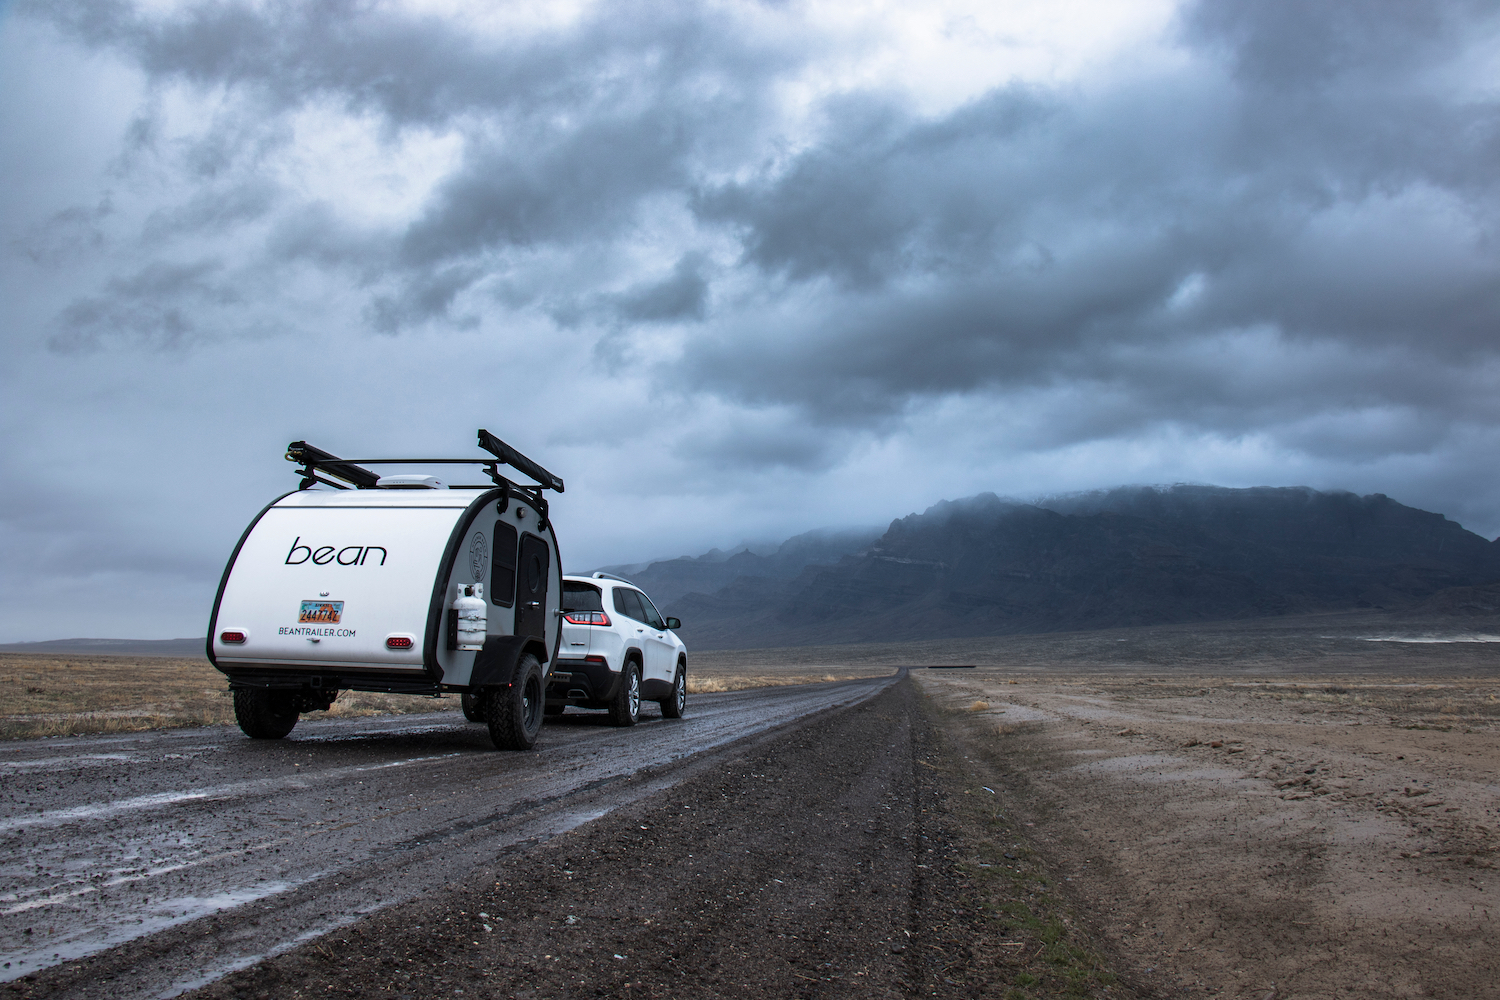 DESERET, UTAH / UNITED STATES - March 5, 2019: Storm Chasing with a Teardrop Trailer